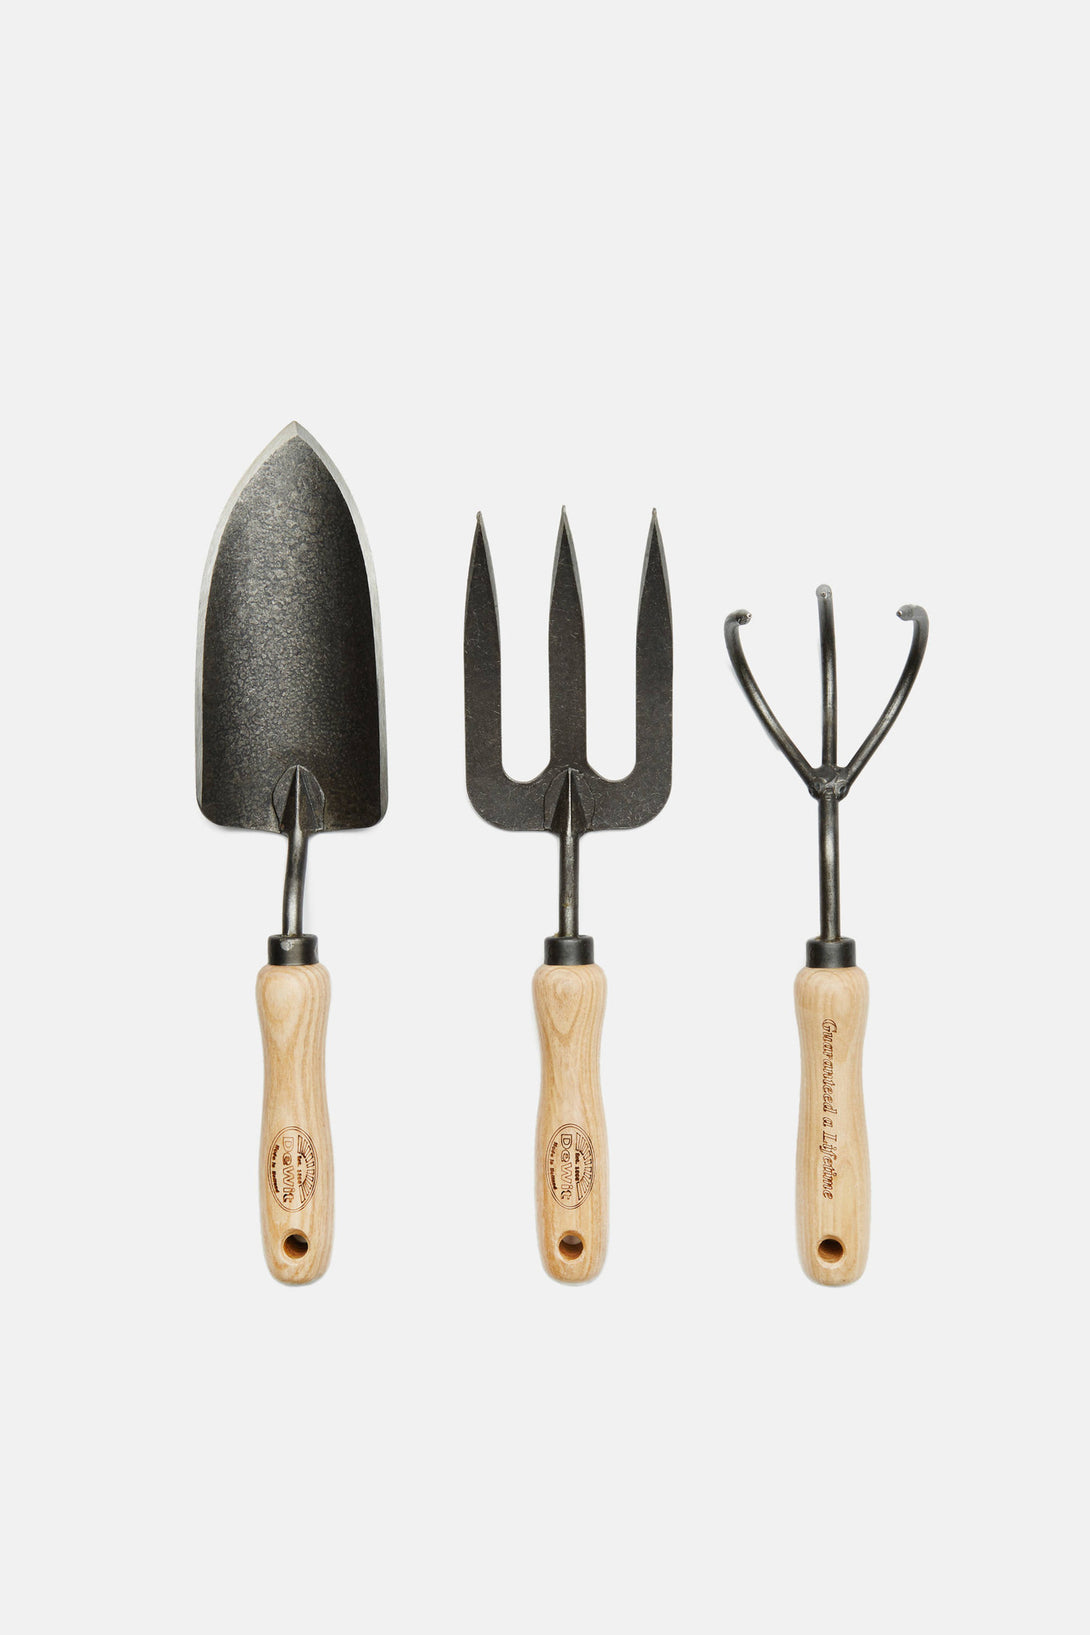 3 Piece Hand Forged Dutch Gardening Tool Set